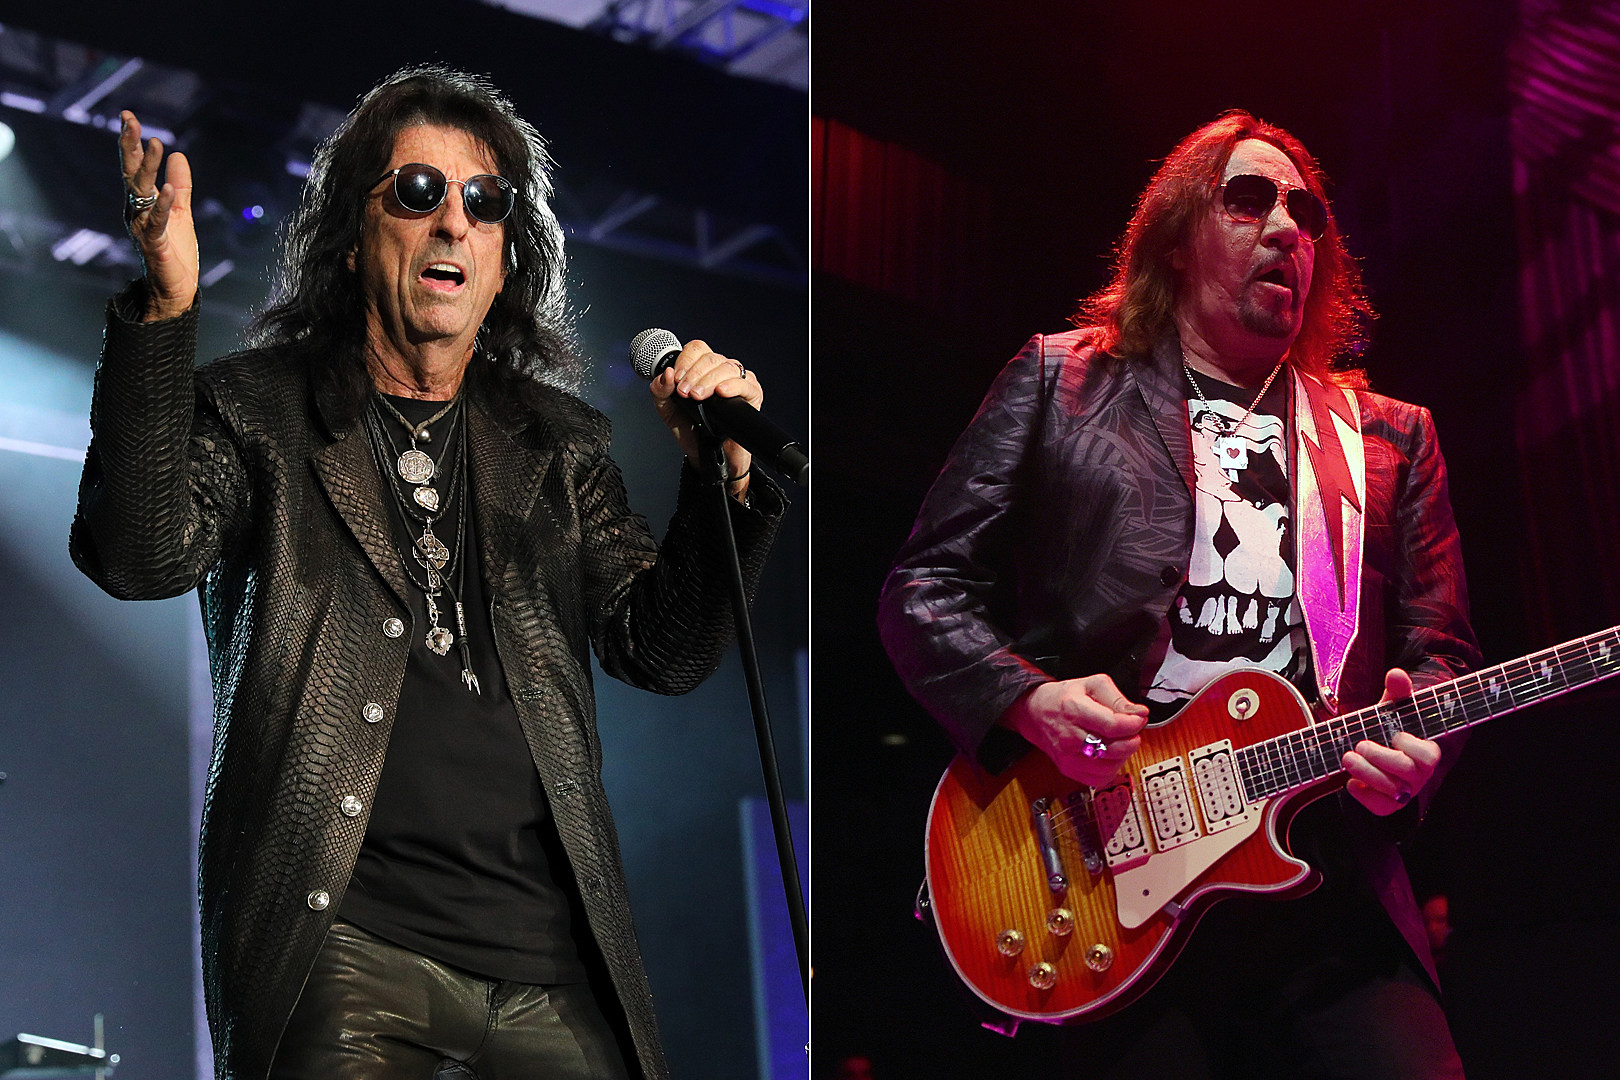 Alice Cooper Fall Tour with Ace Frehley Tour Dates 2021 Calendar